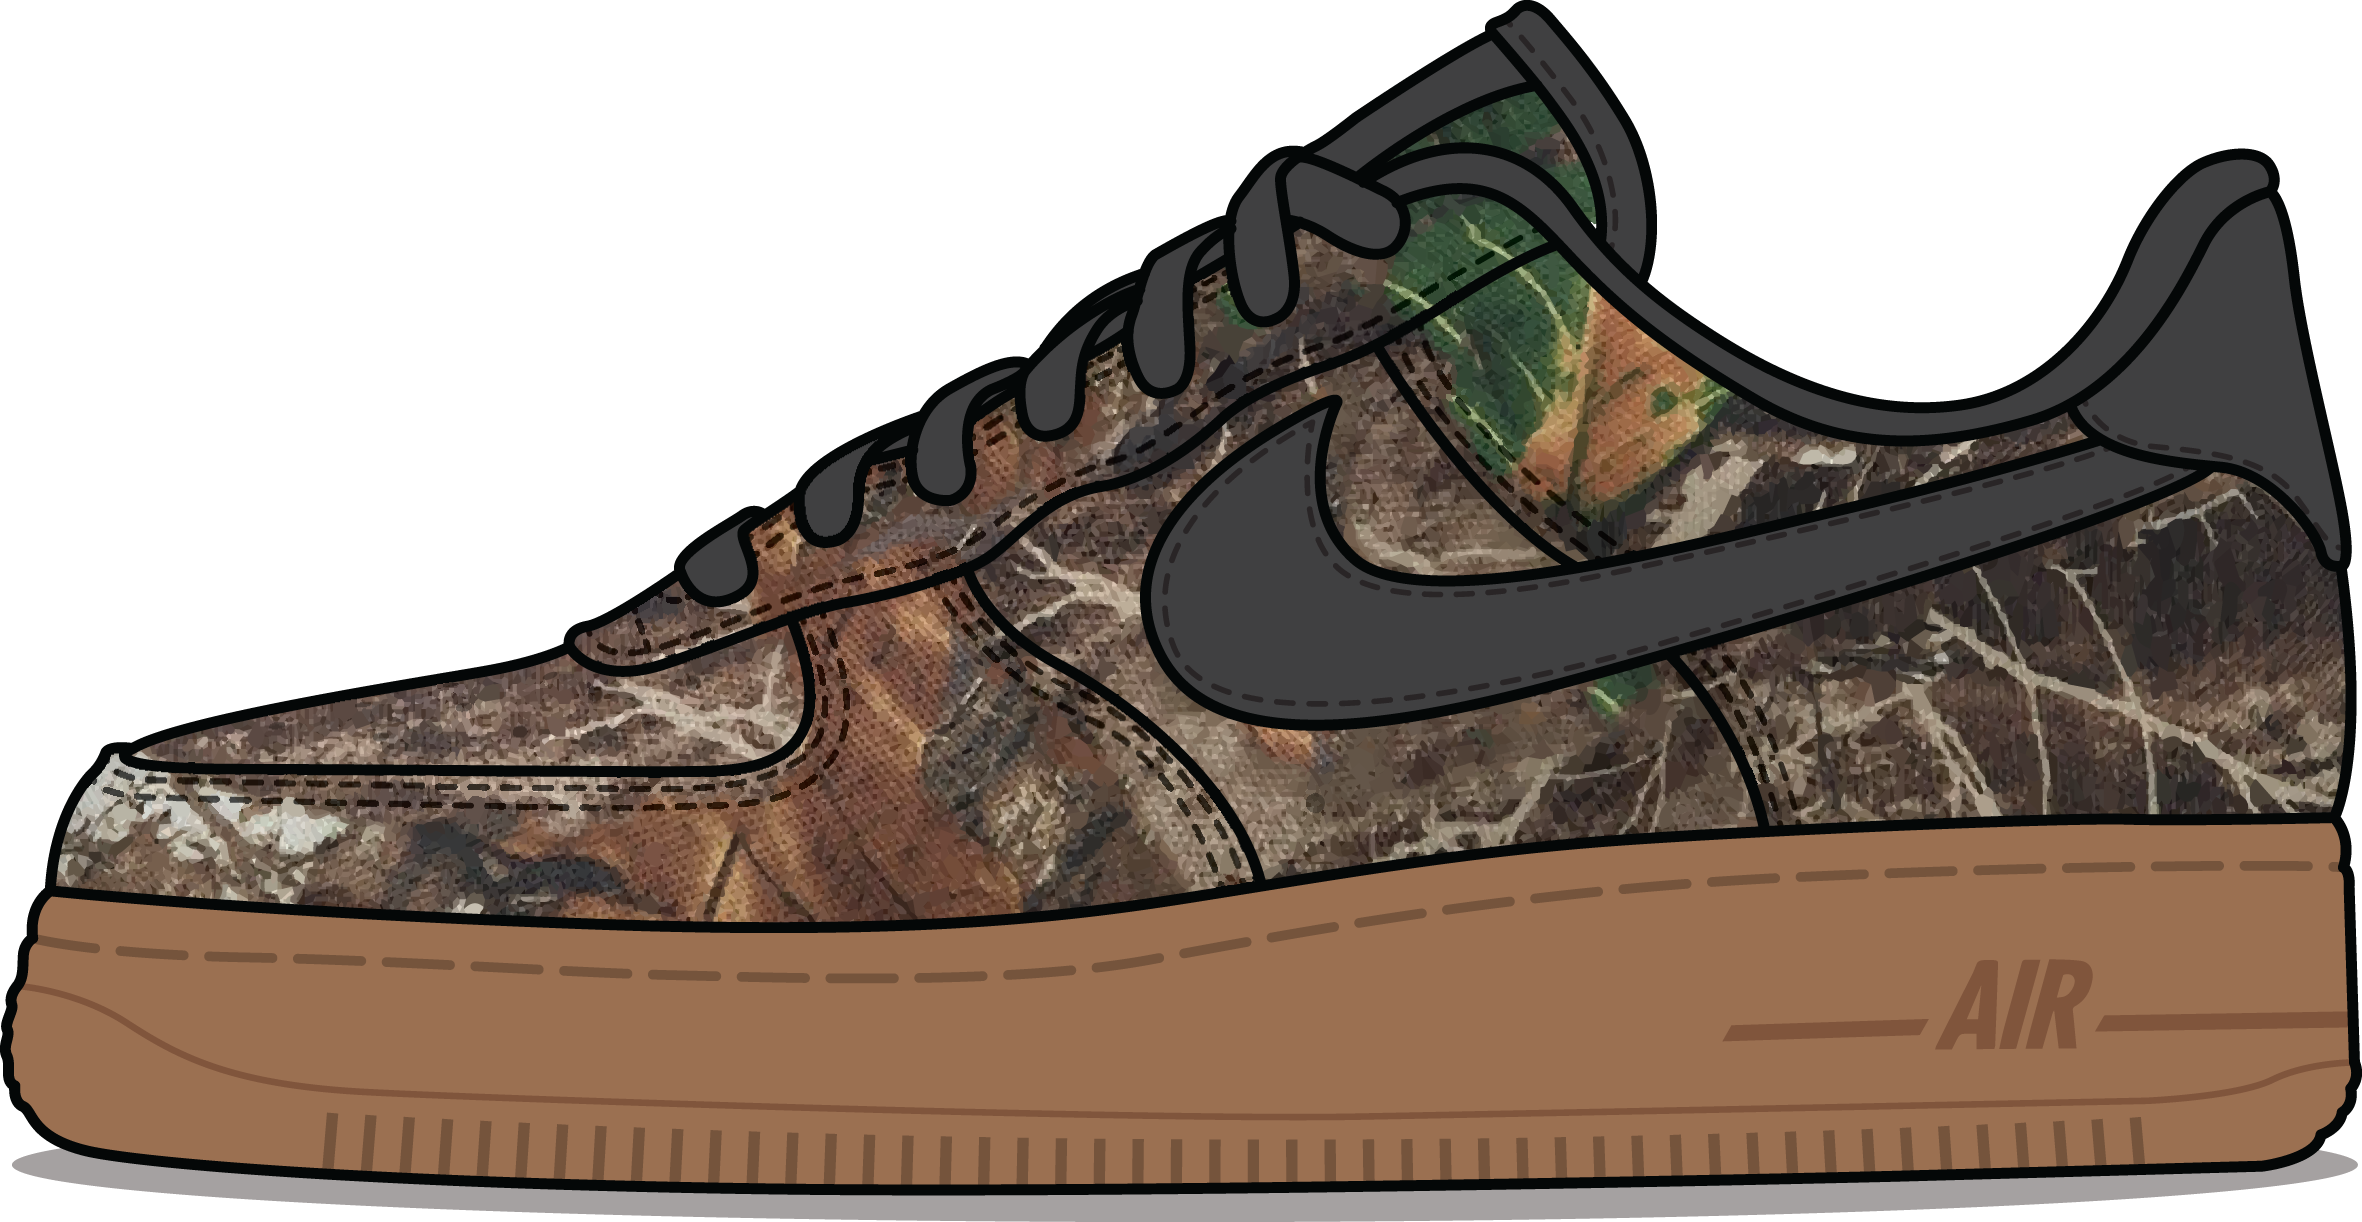 Nike Air Force 1 'Realtree' Camouflage Pack